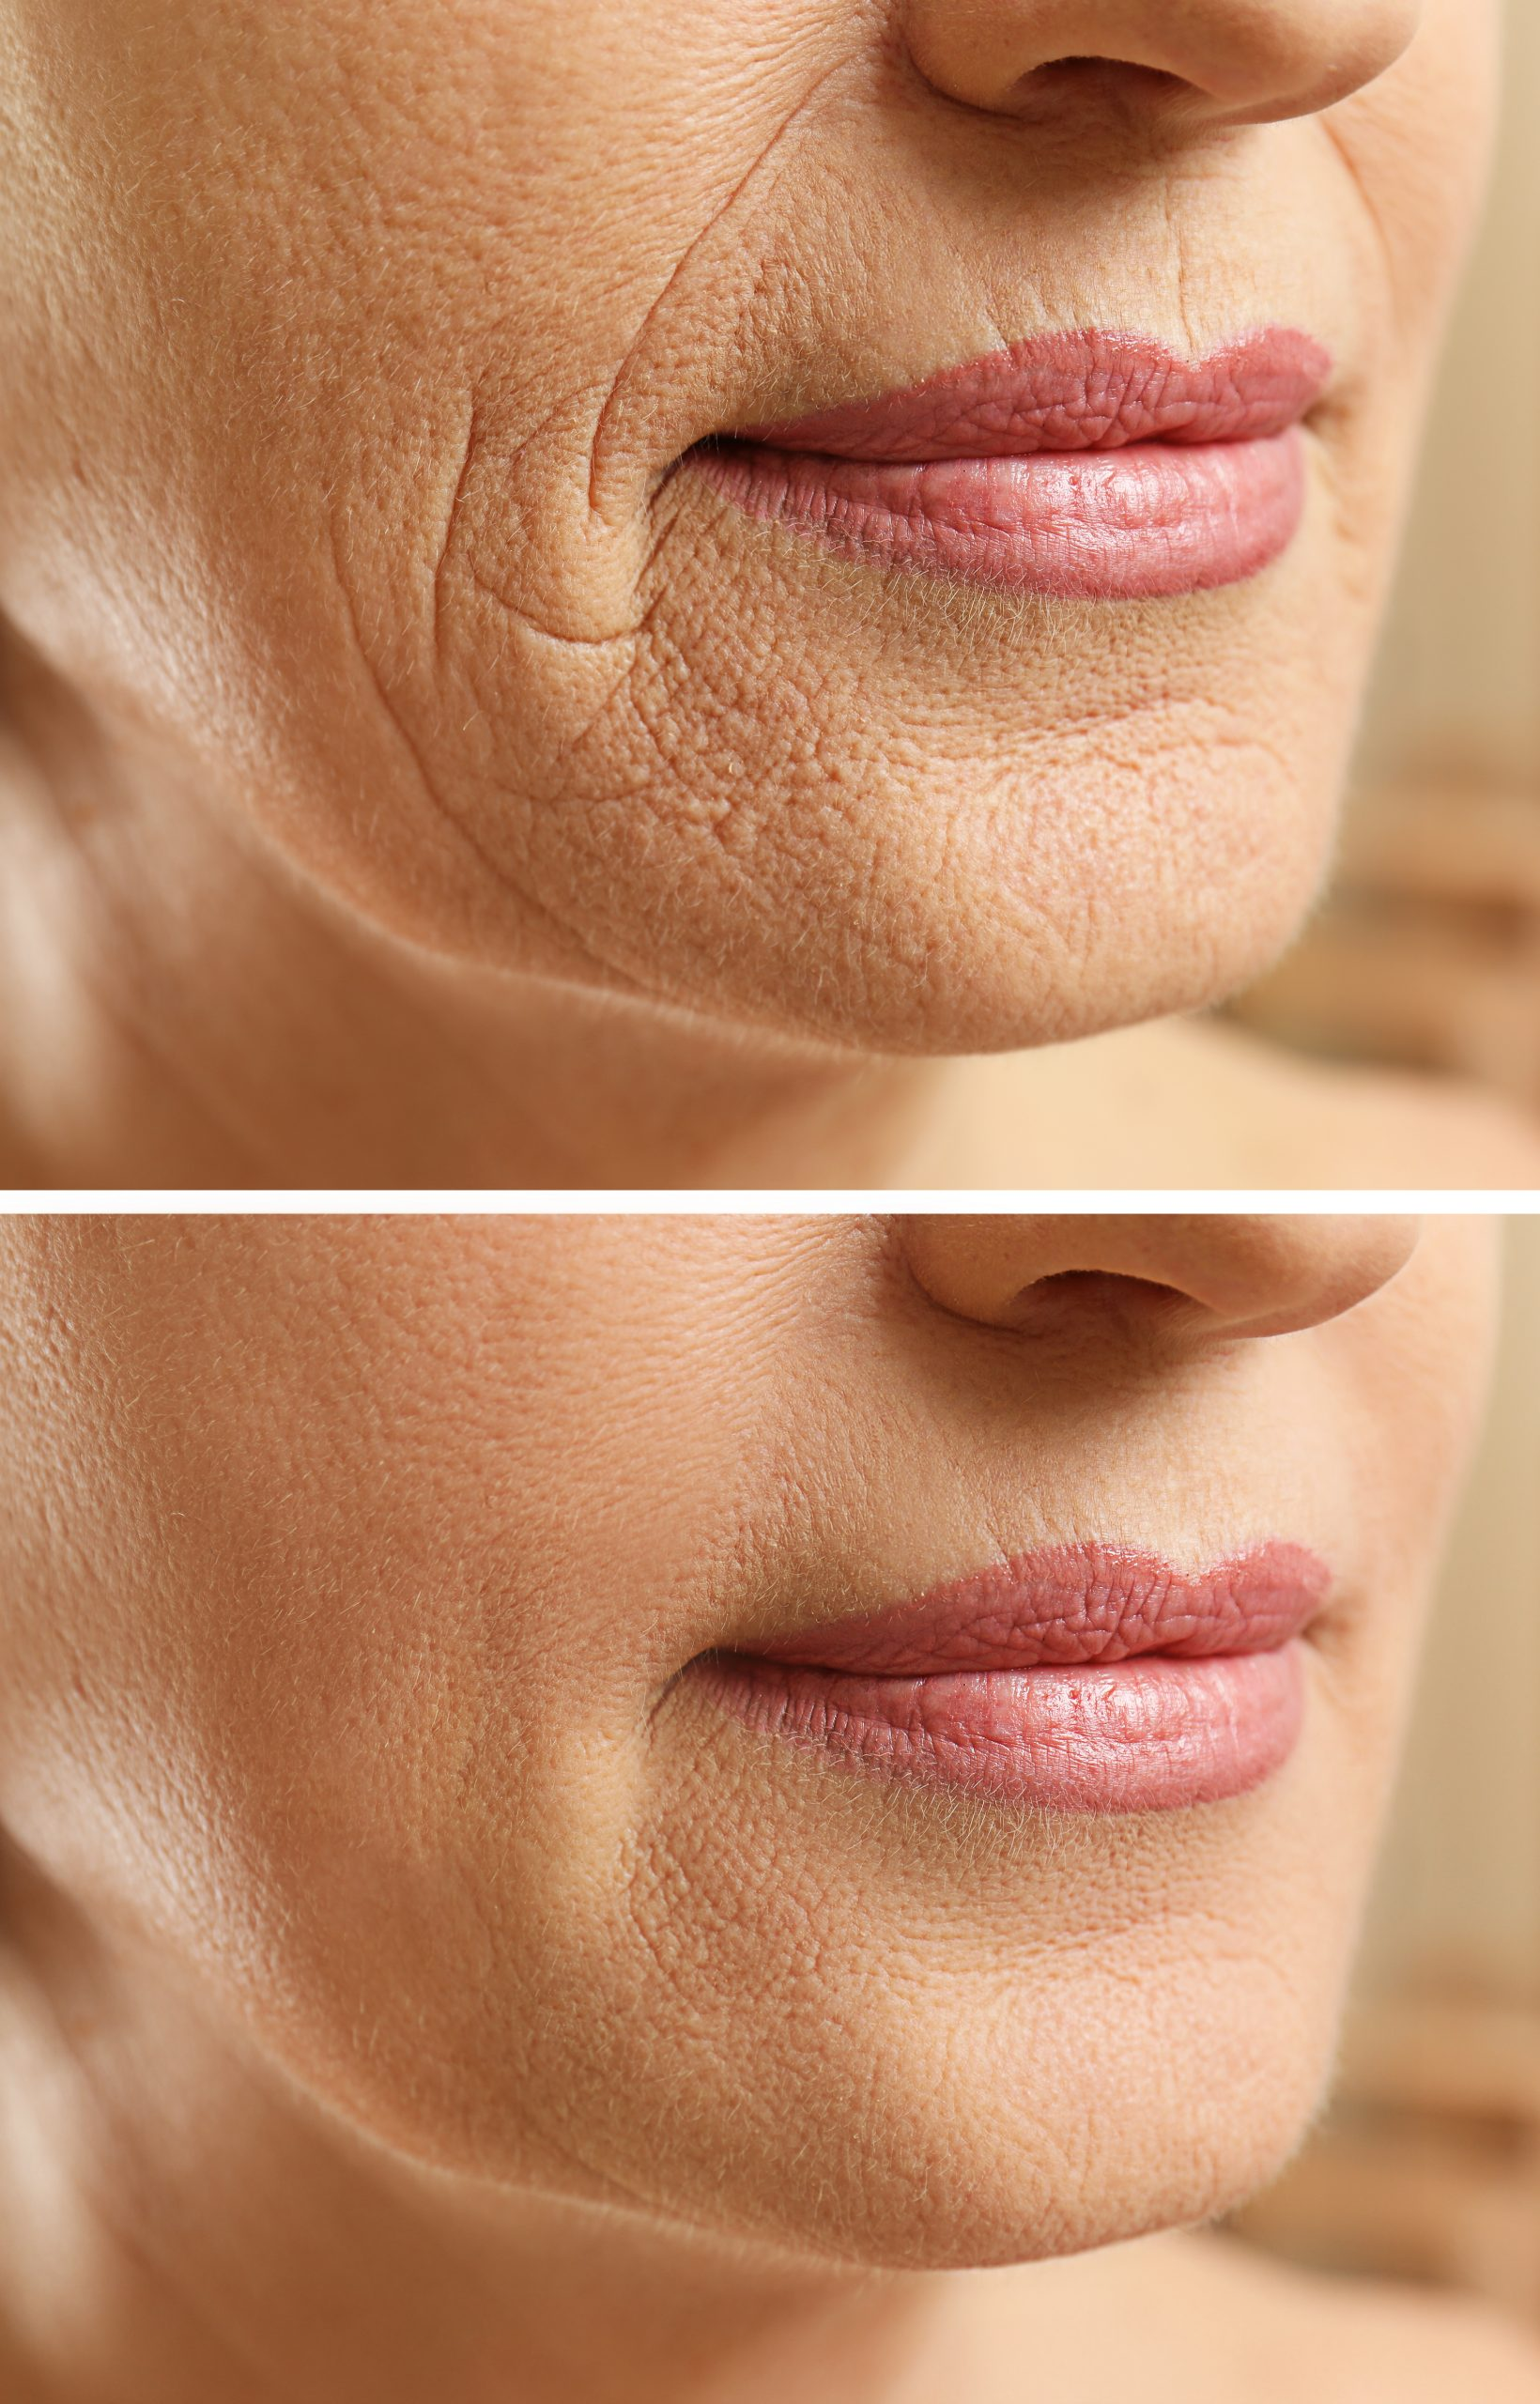 collagen skin patches image 1